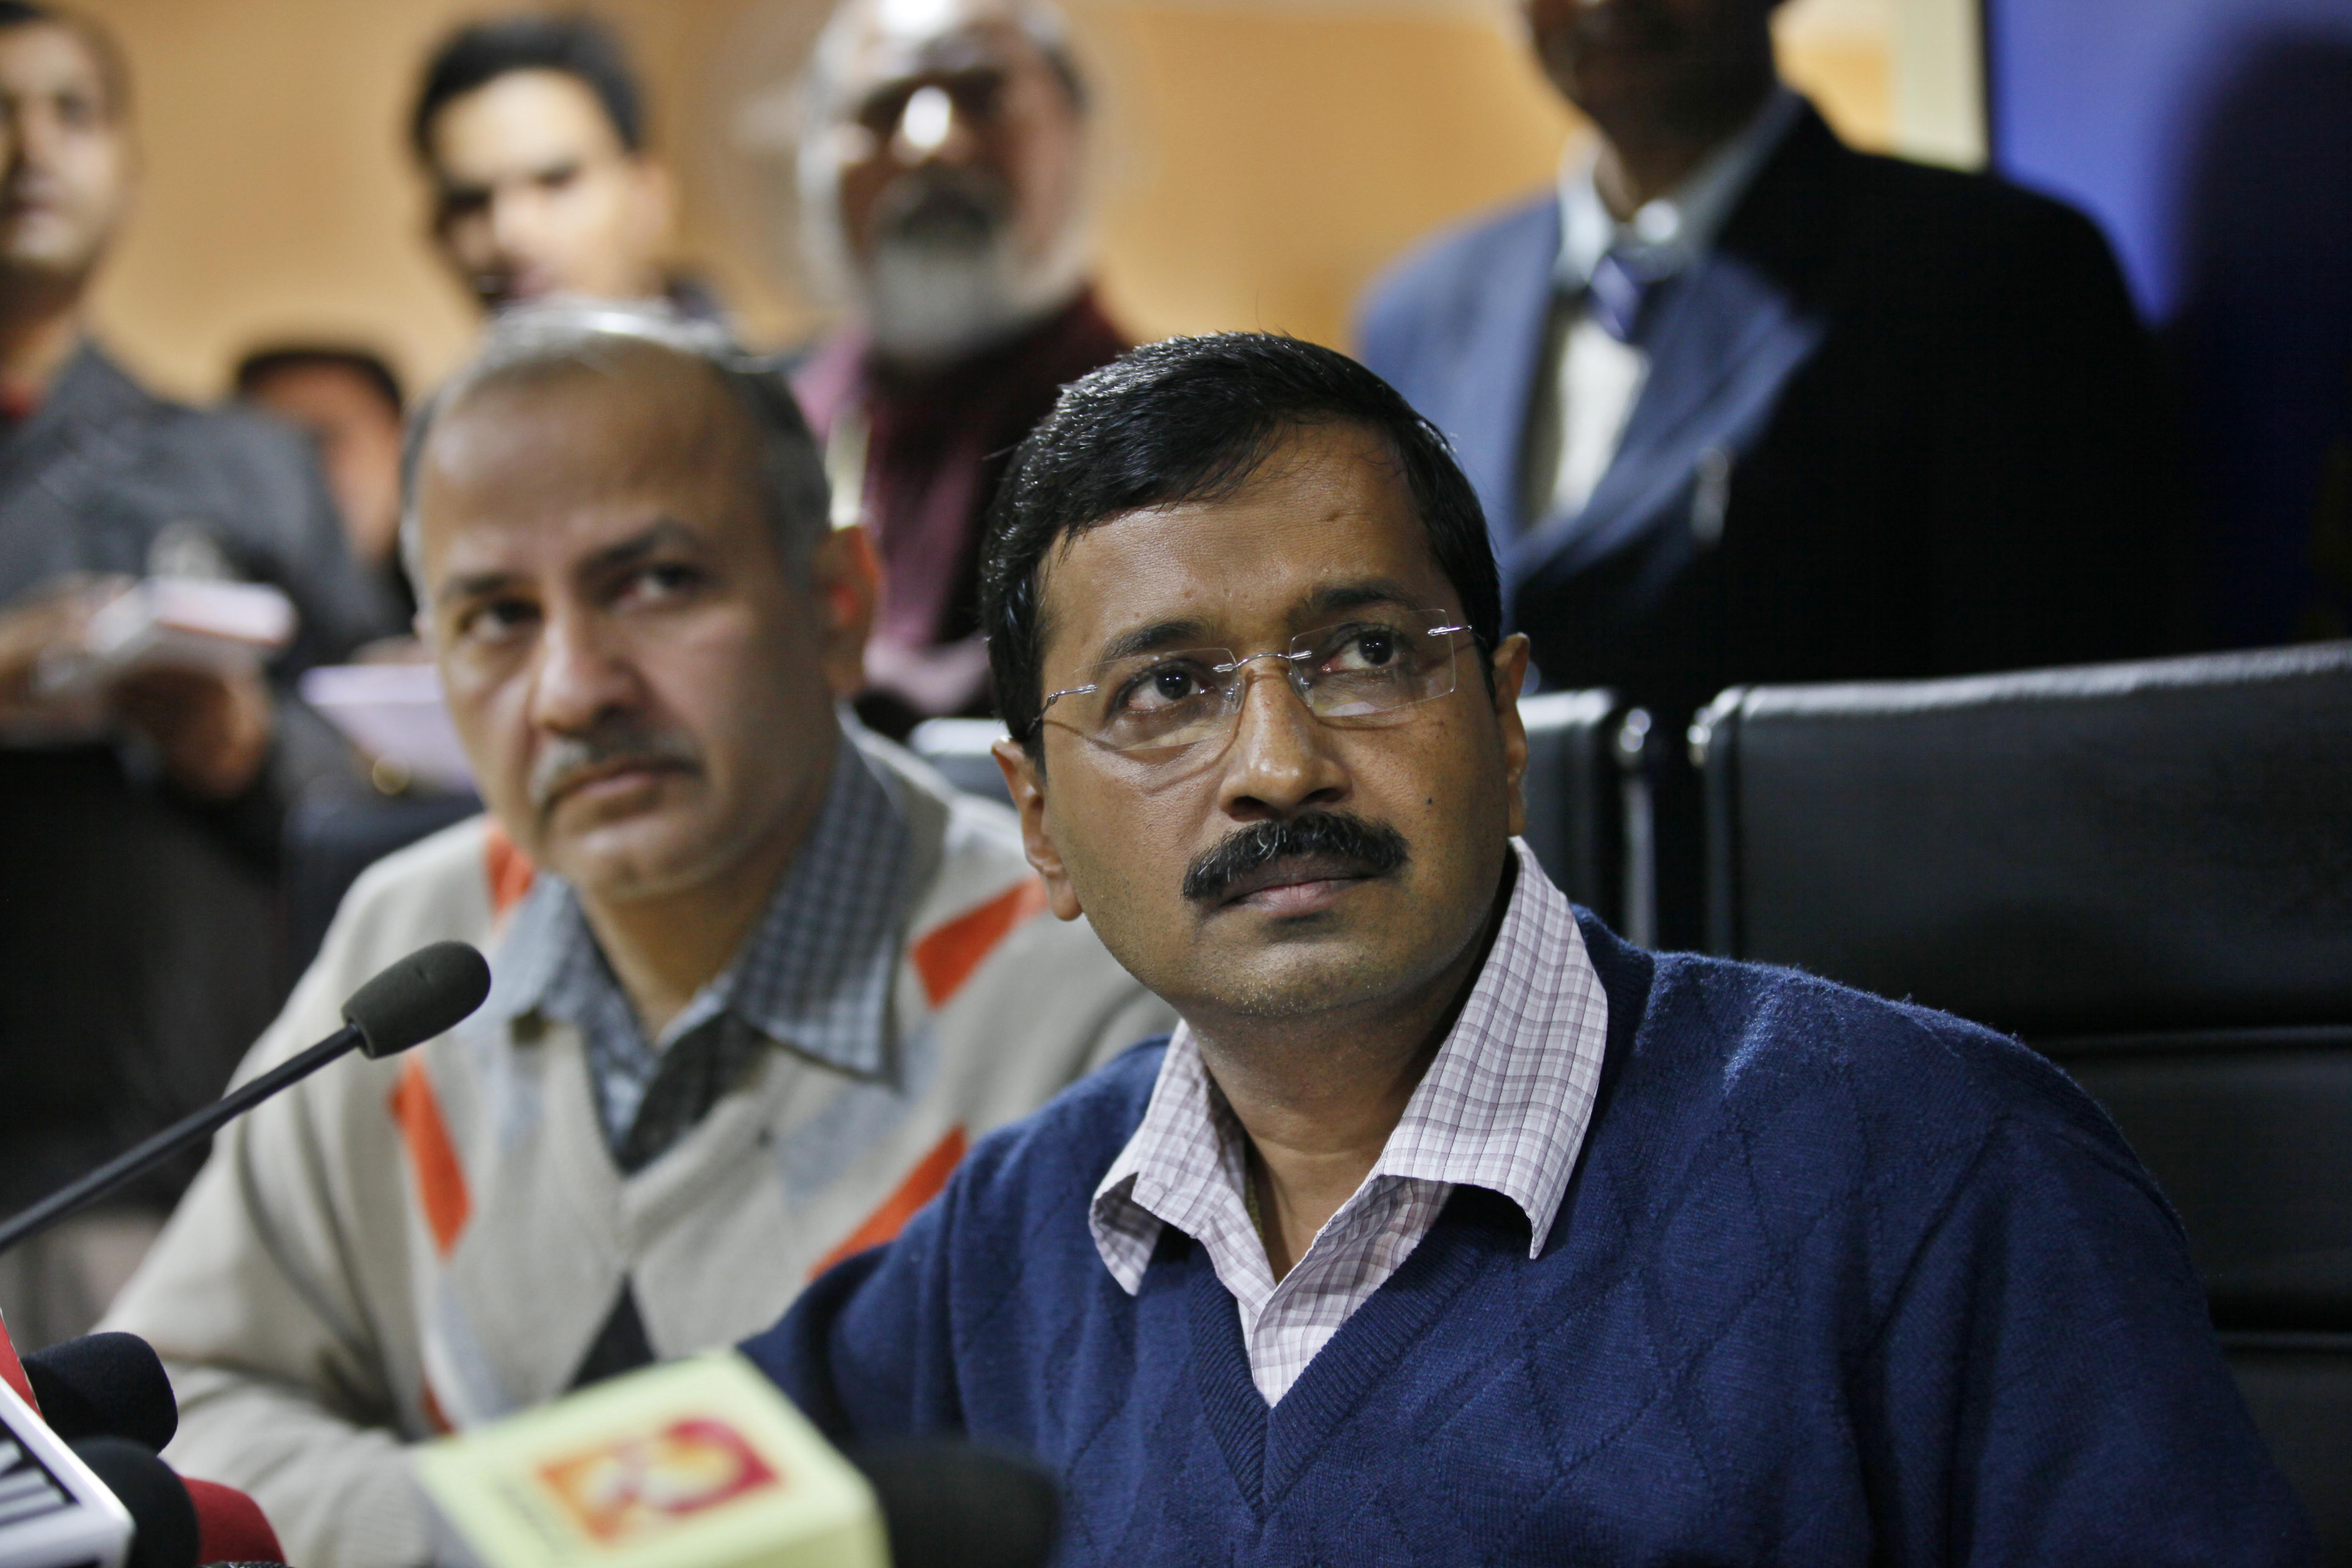 From right: Delhi Chief Minister Arvind Kejriwal and Manish Sisodia address a news conference on Feb. 11, 2014 in New Delhi.